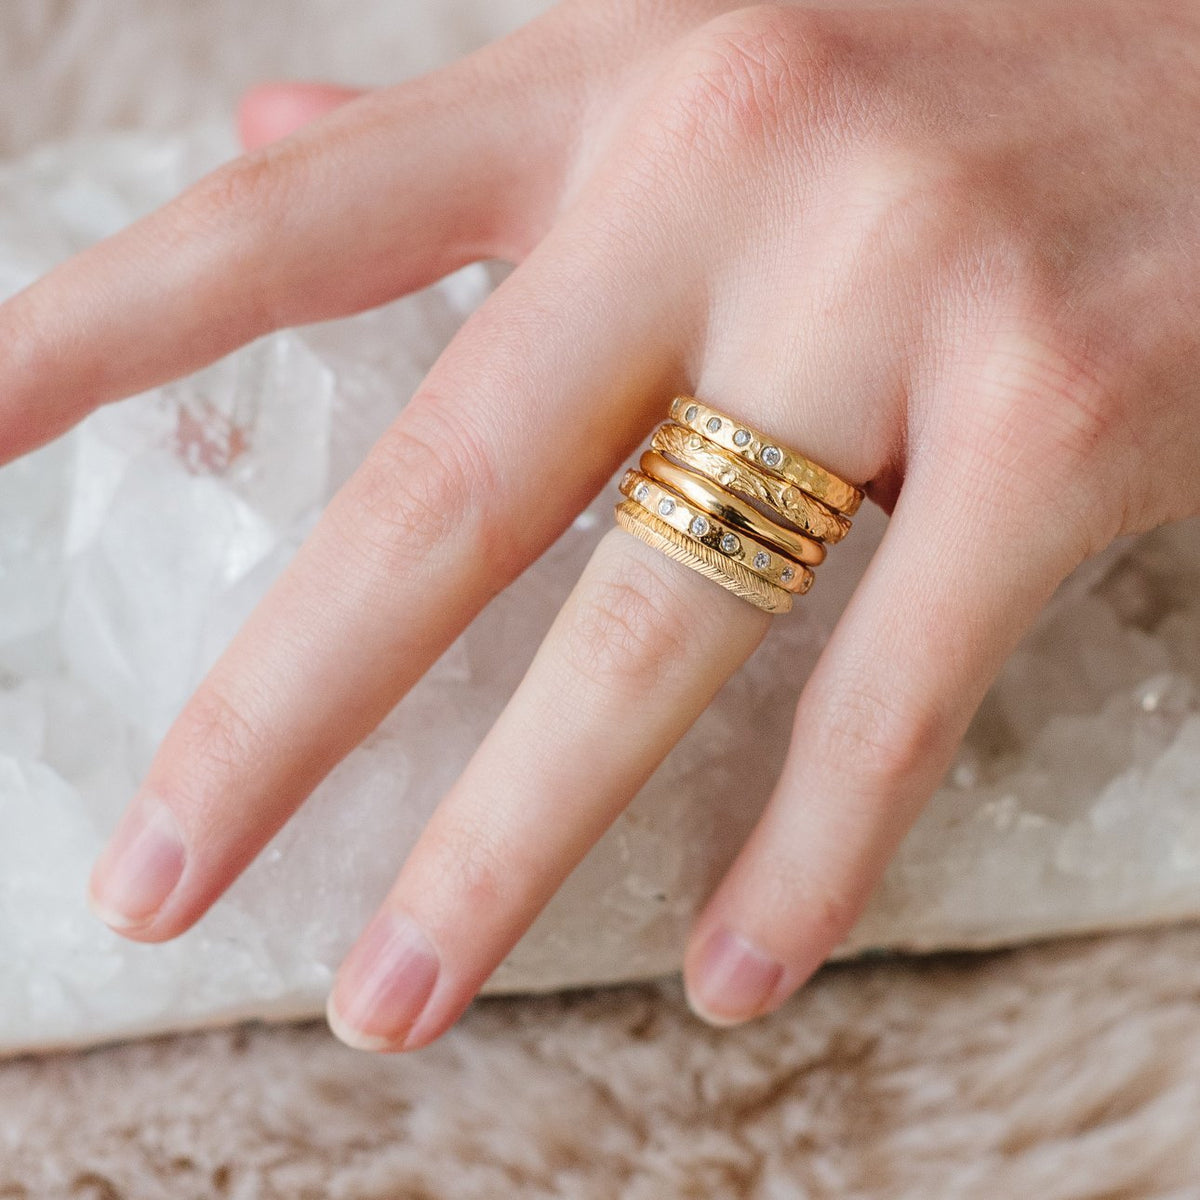 POISE STACKING RING & PENDANT GOLD - SO PRETTY CARA COTTER